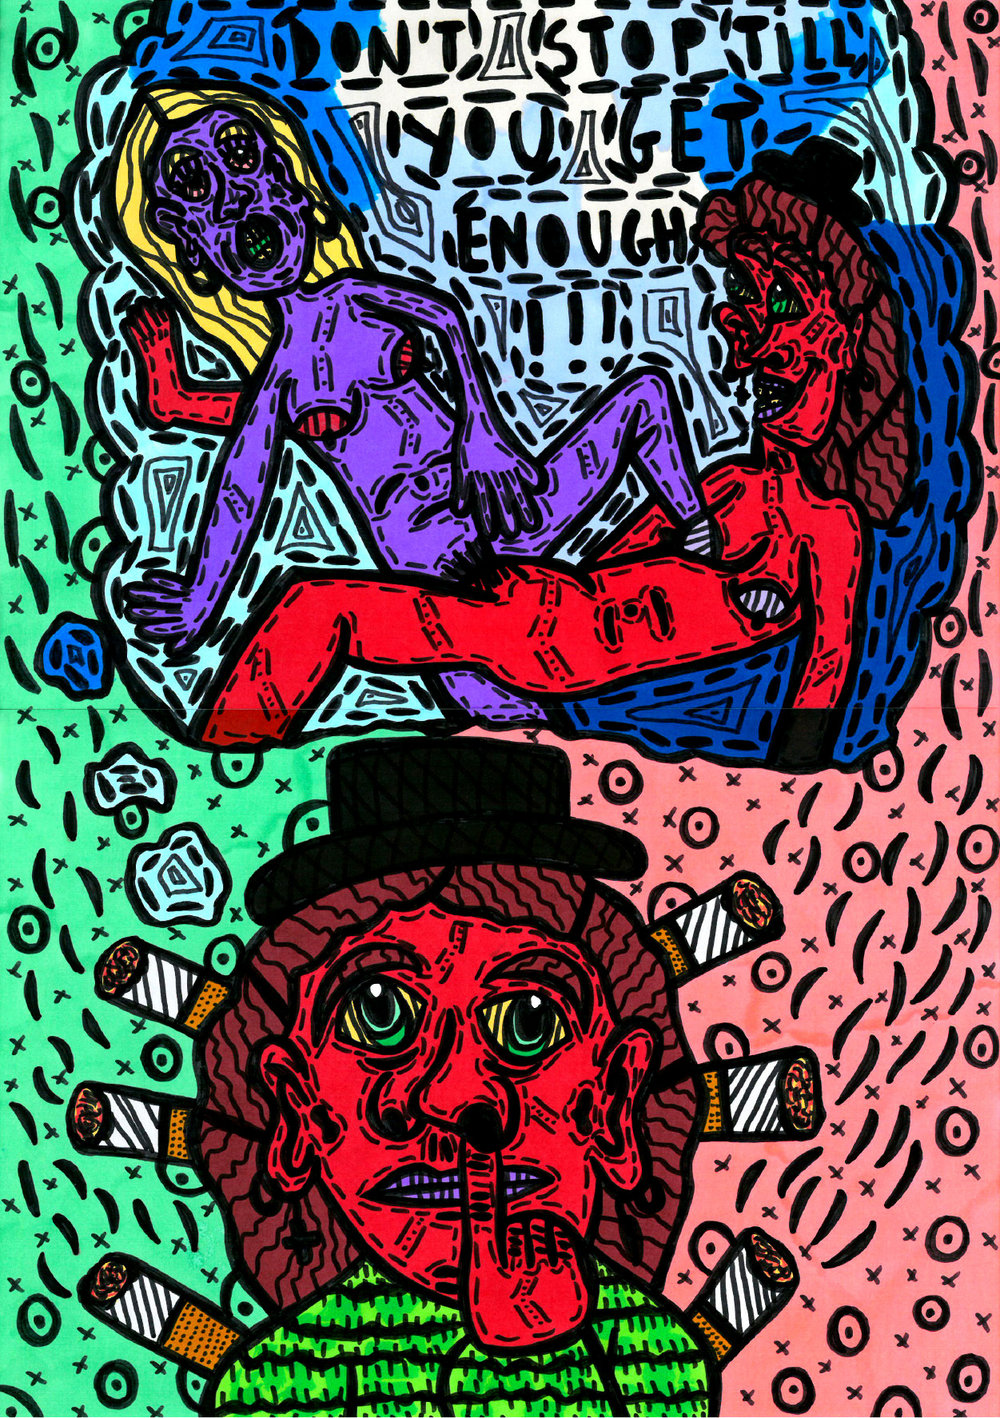 """Don't stop till you get enough!!"" , 2015   Marker on paper, 29.7 x 42 cm Private Collection"